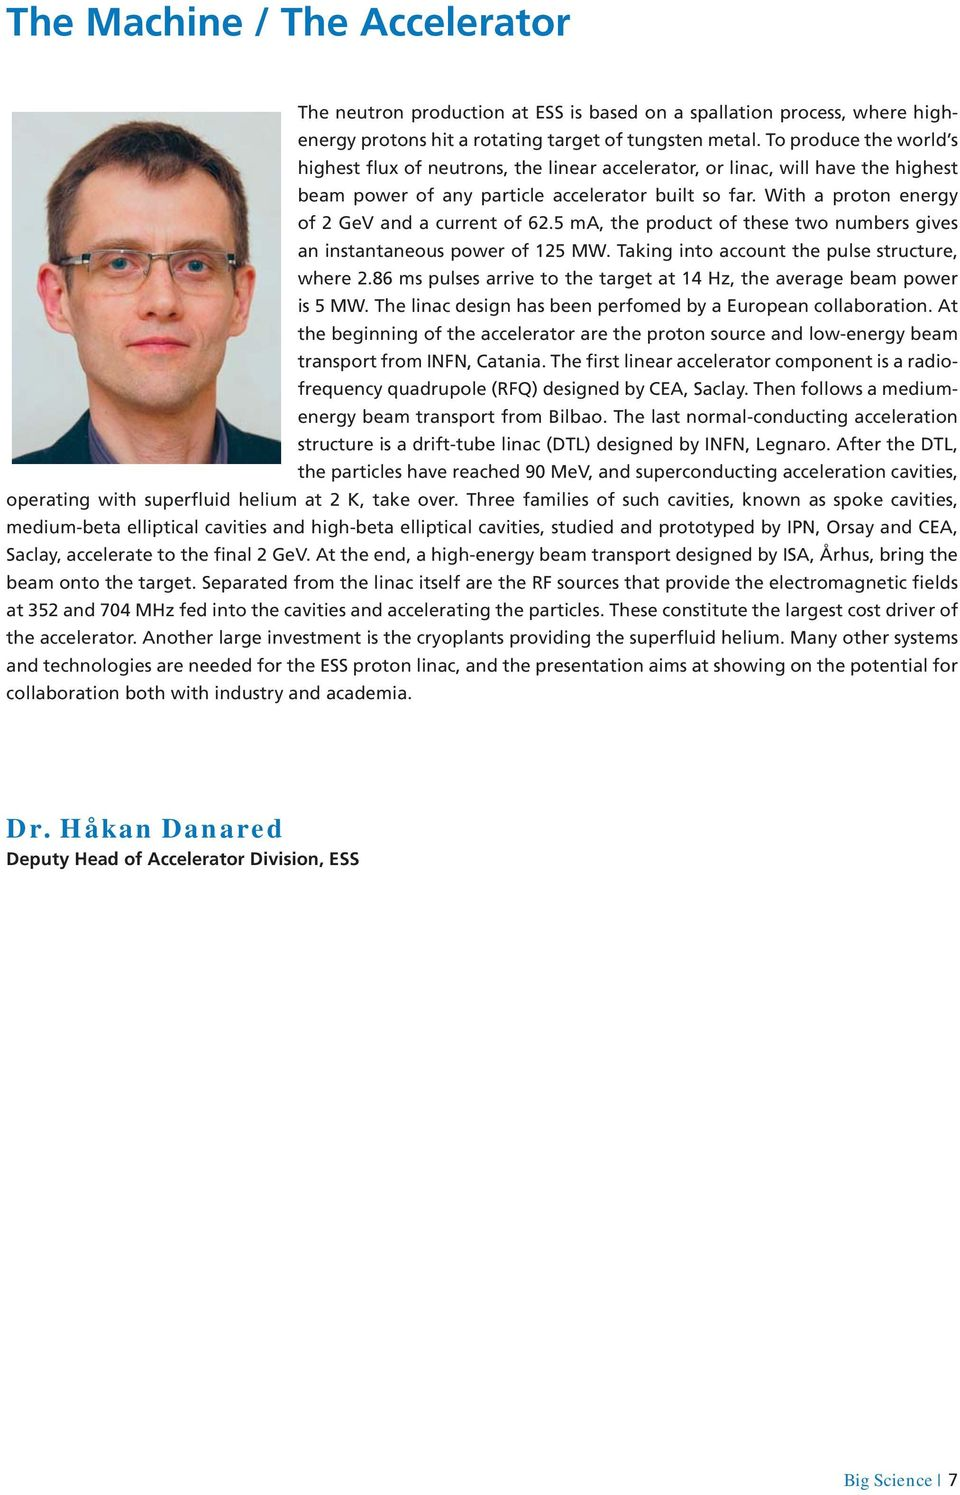 With a proto n energy of 2 GeV and a current of 62.5 ma, the product of these two numbers gives an instantaneous power of 125 MW. Taking into account the pulse structure, where 2.